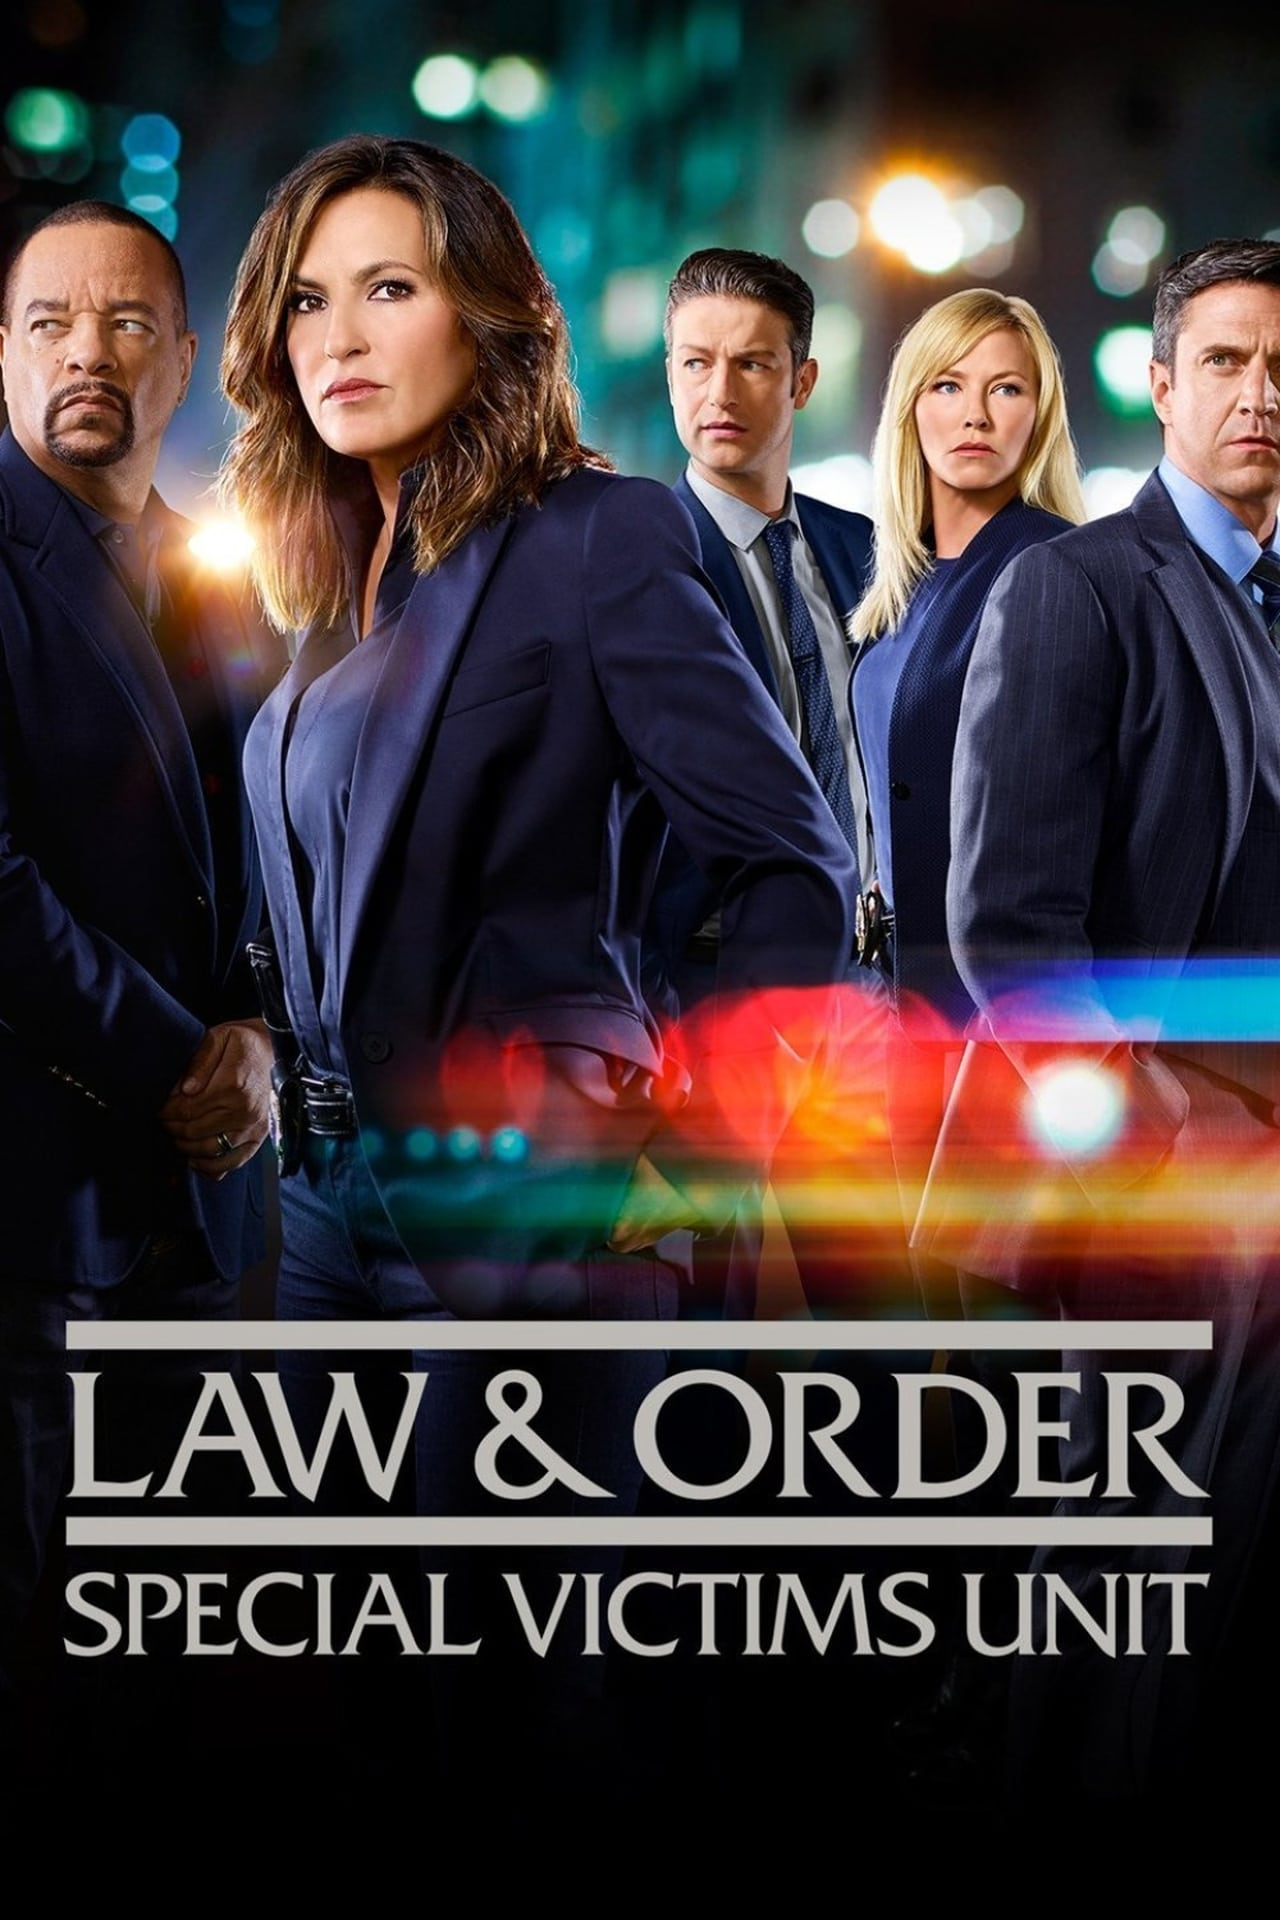 Putlocker Law & Order: Special Victims Unit Season 19 (2017)